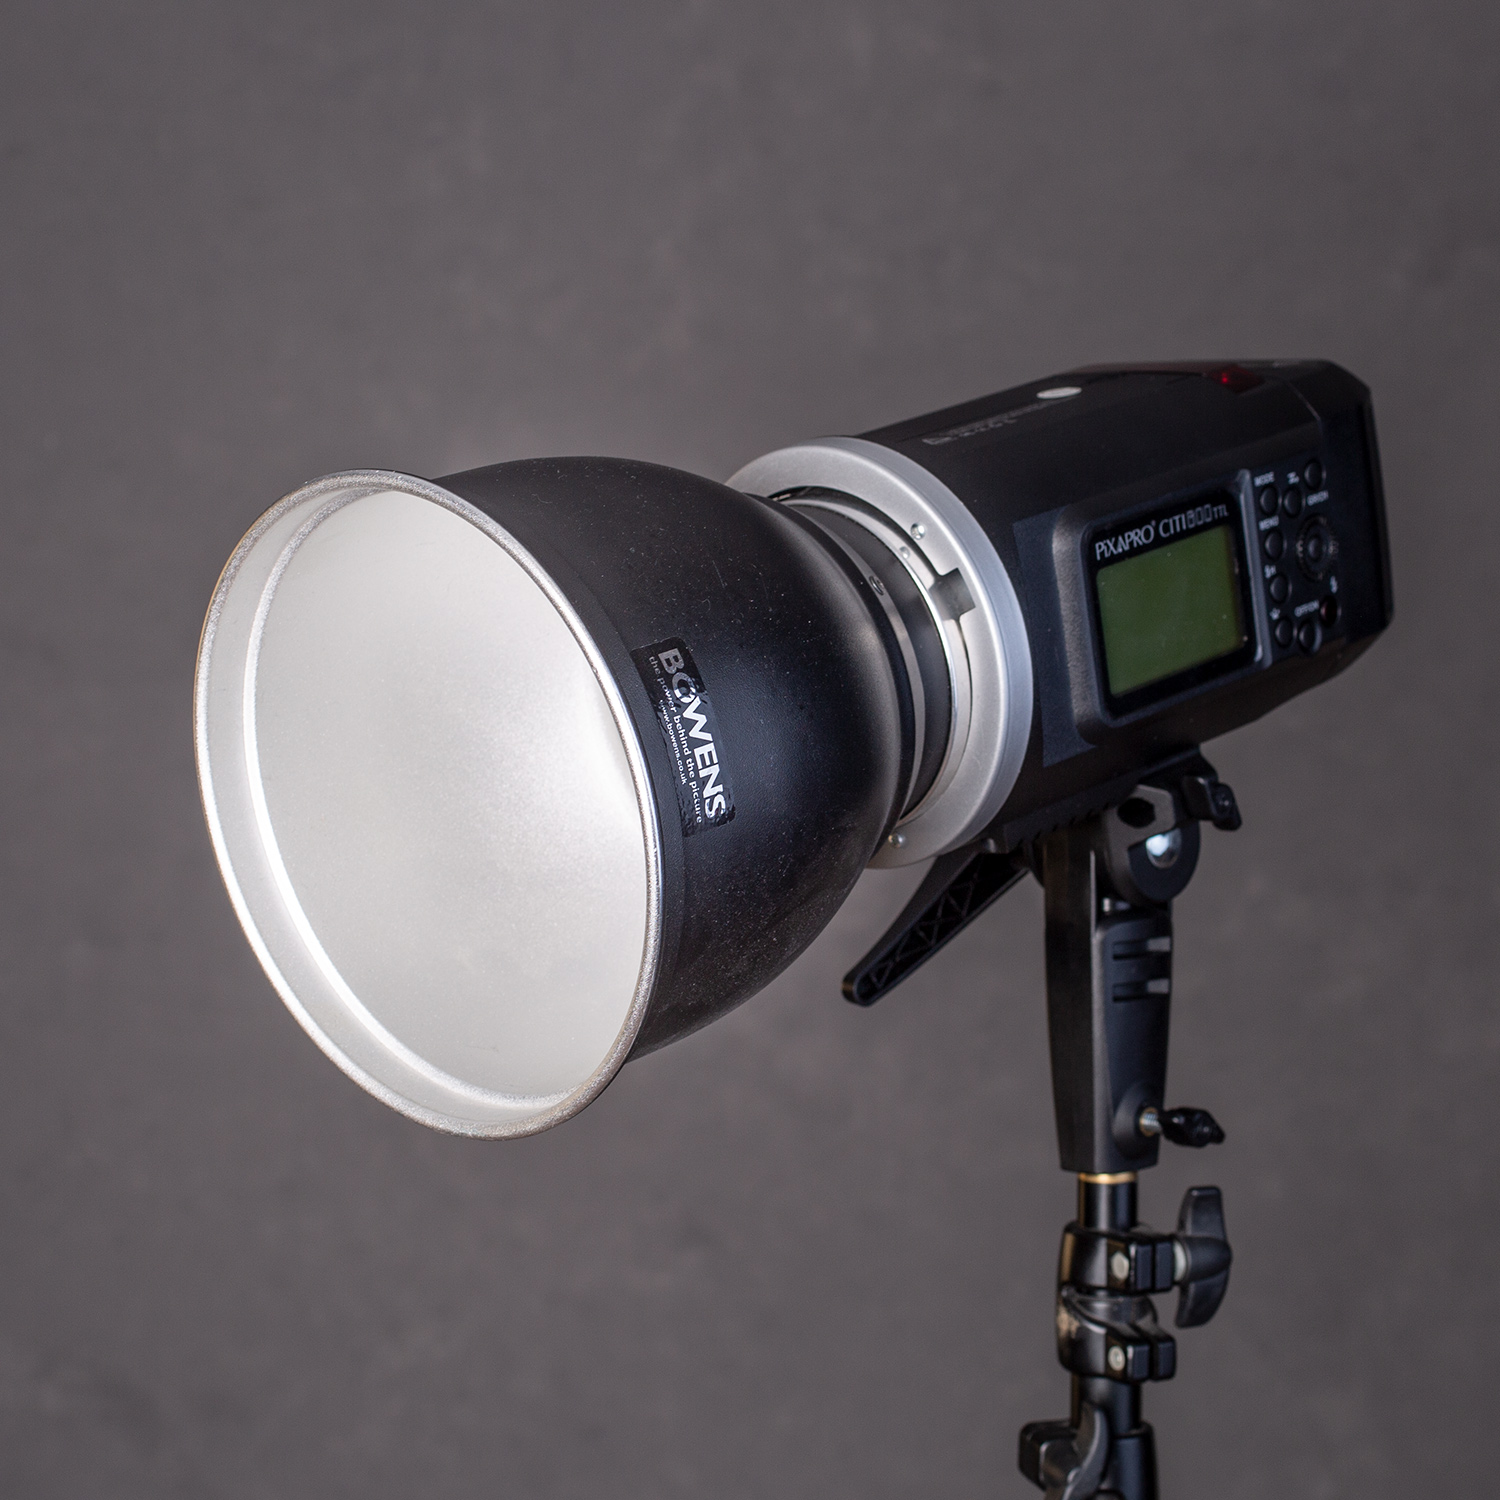 Image: Reflectors, like this 110-degree reflector, provide a very directional and very hard light so...